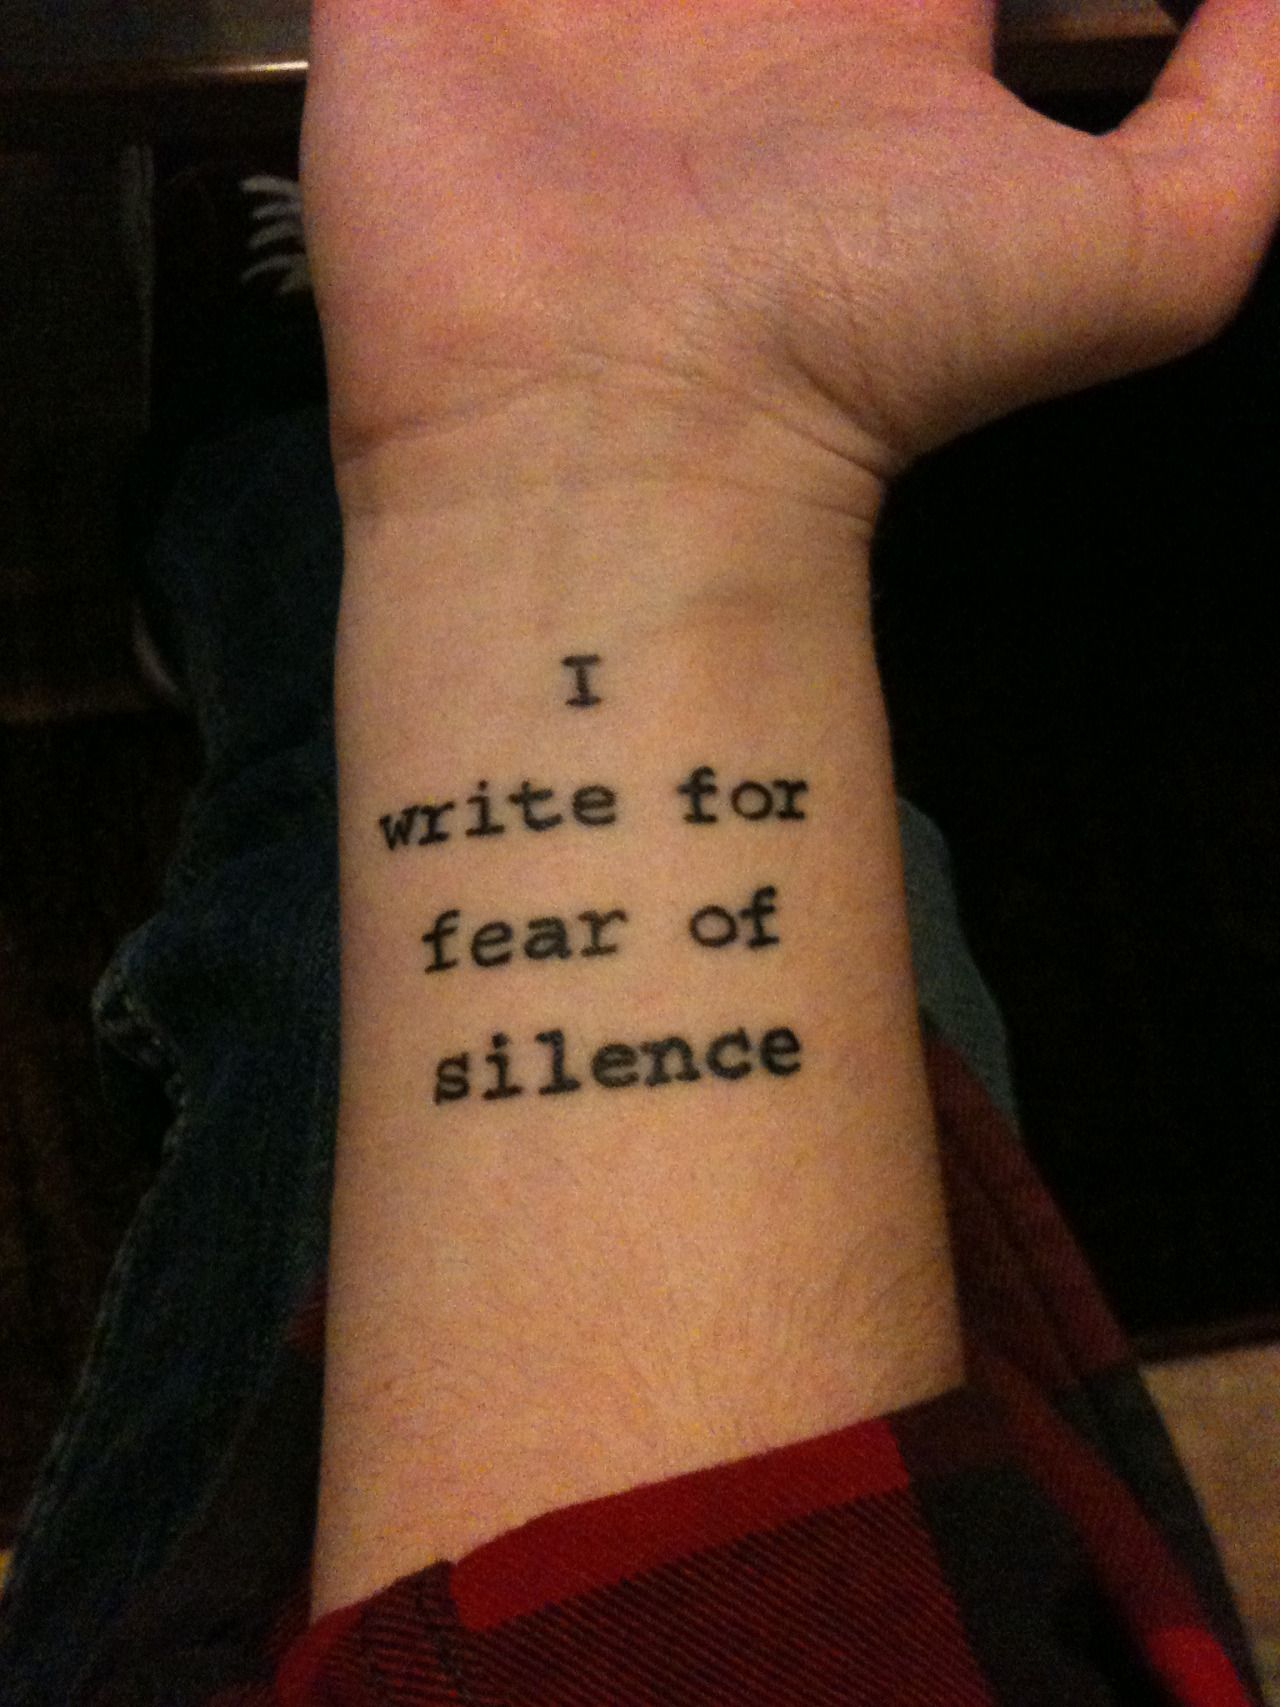 'I write for fear of s...